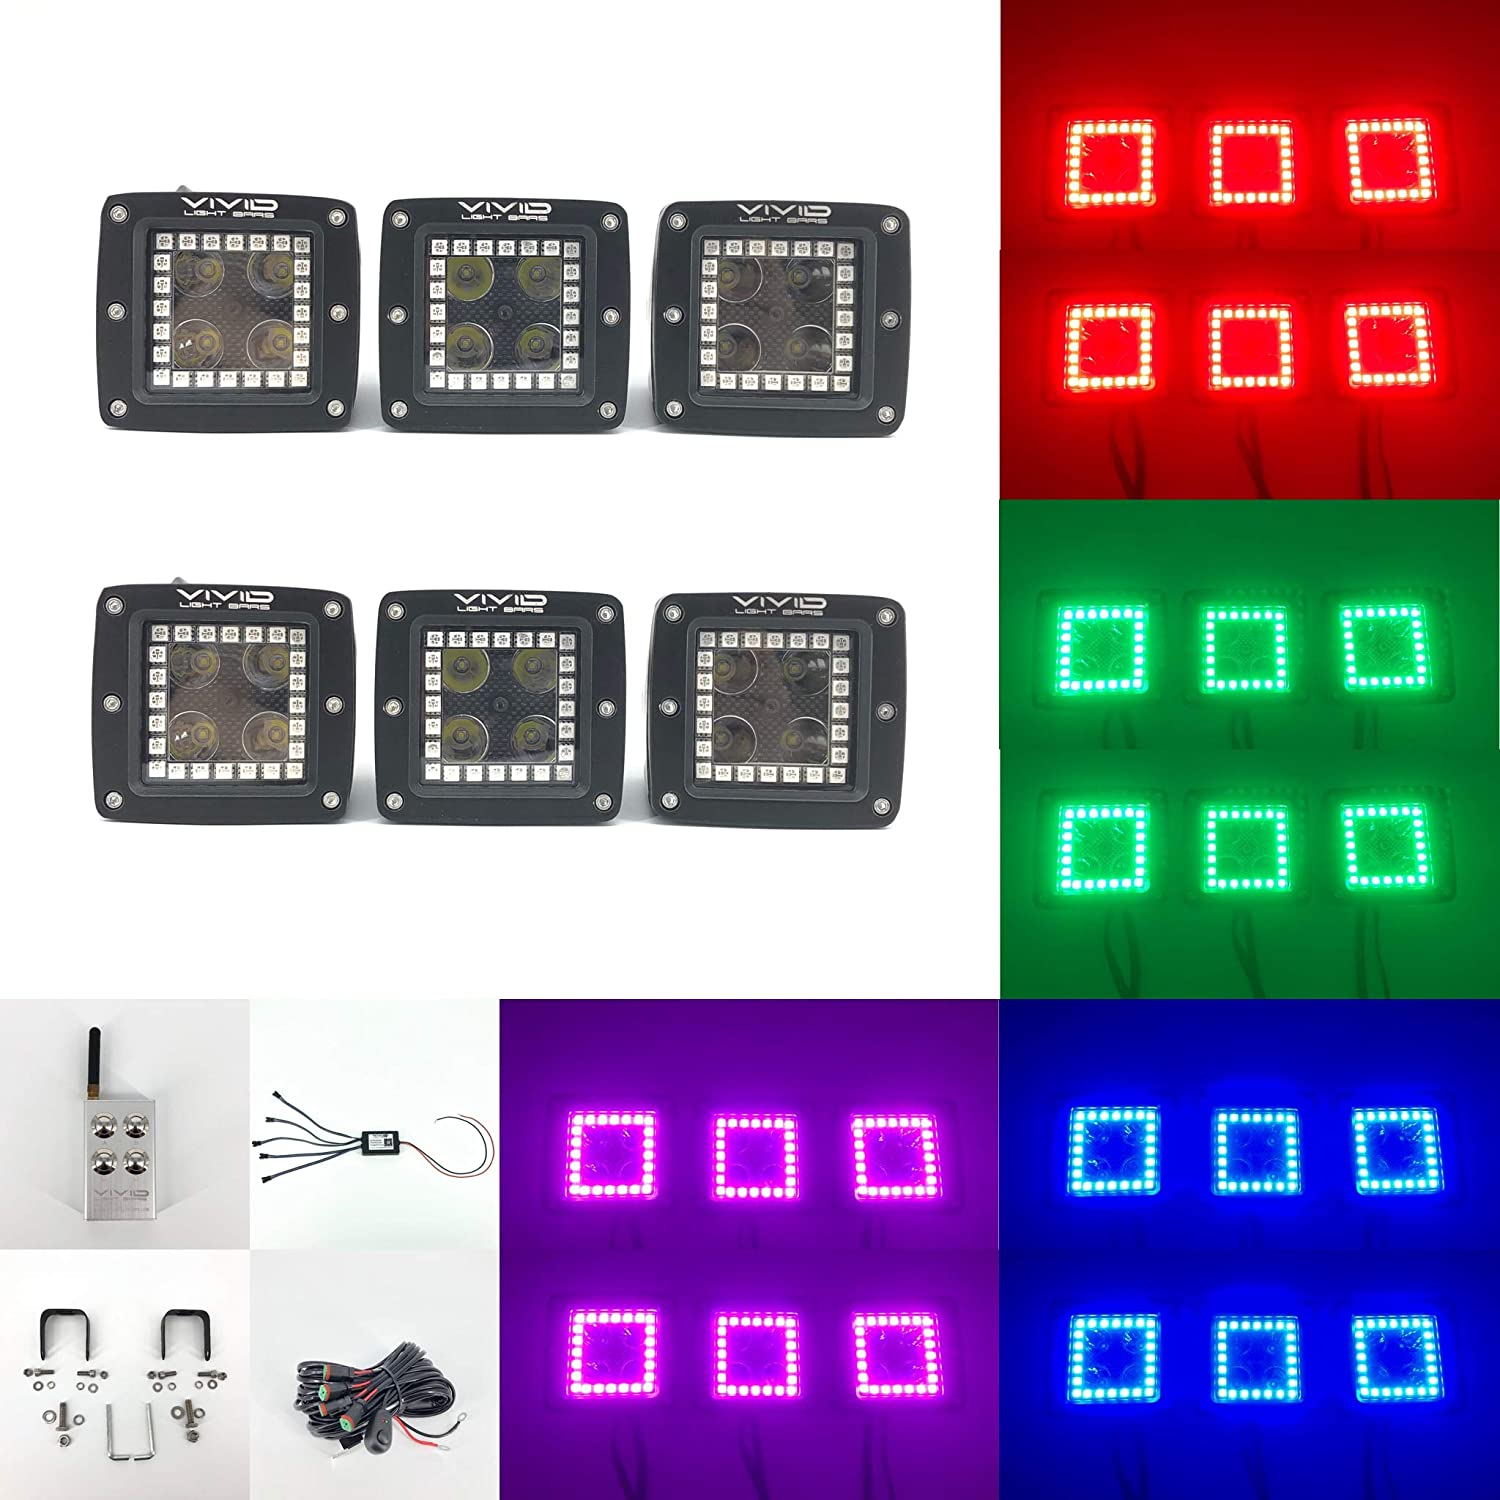 Vivid Light Bars 3.2'' 20W Single Color Alternative Flash Strobe LED Pods with Bluetooth APP Control RGB Halo for Offroad Truck SUV ATV UTV (RGB Halo 6 PACK, White)